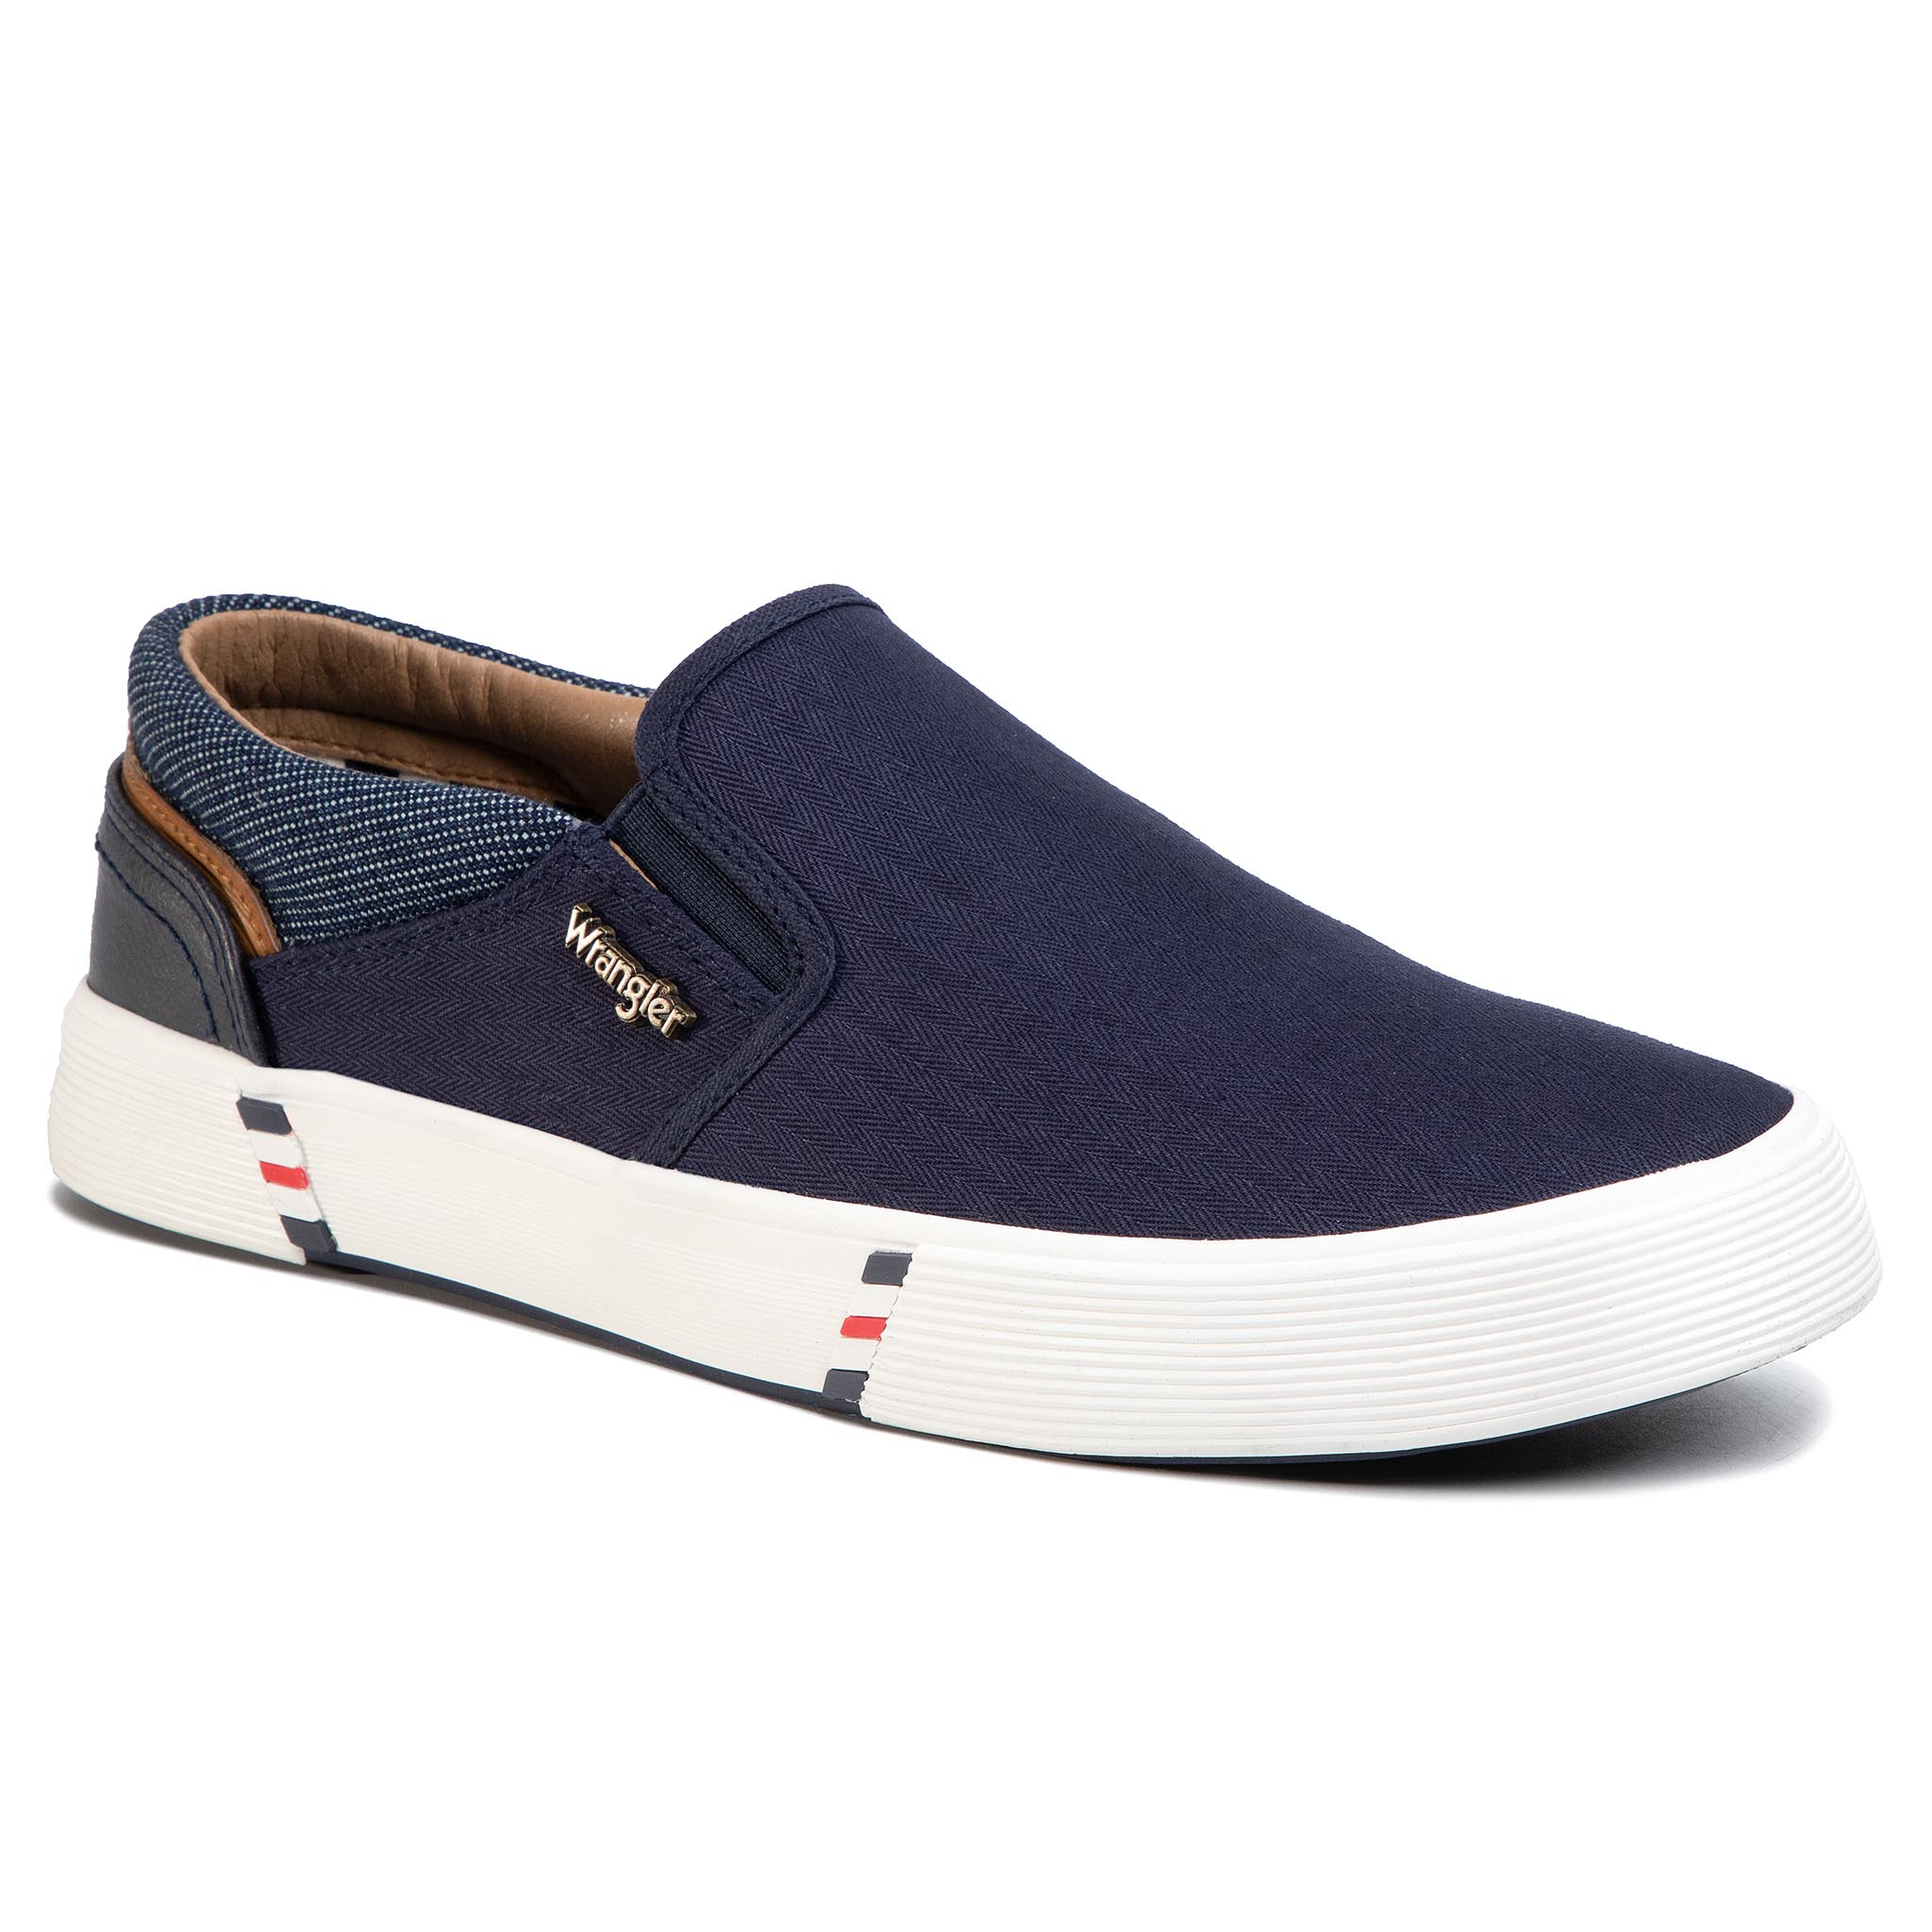 Teniși Wrangler - Monument Slip On Wm01002a Navy 016 imagine epantofi.ro 2021